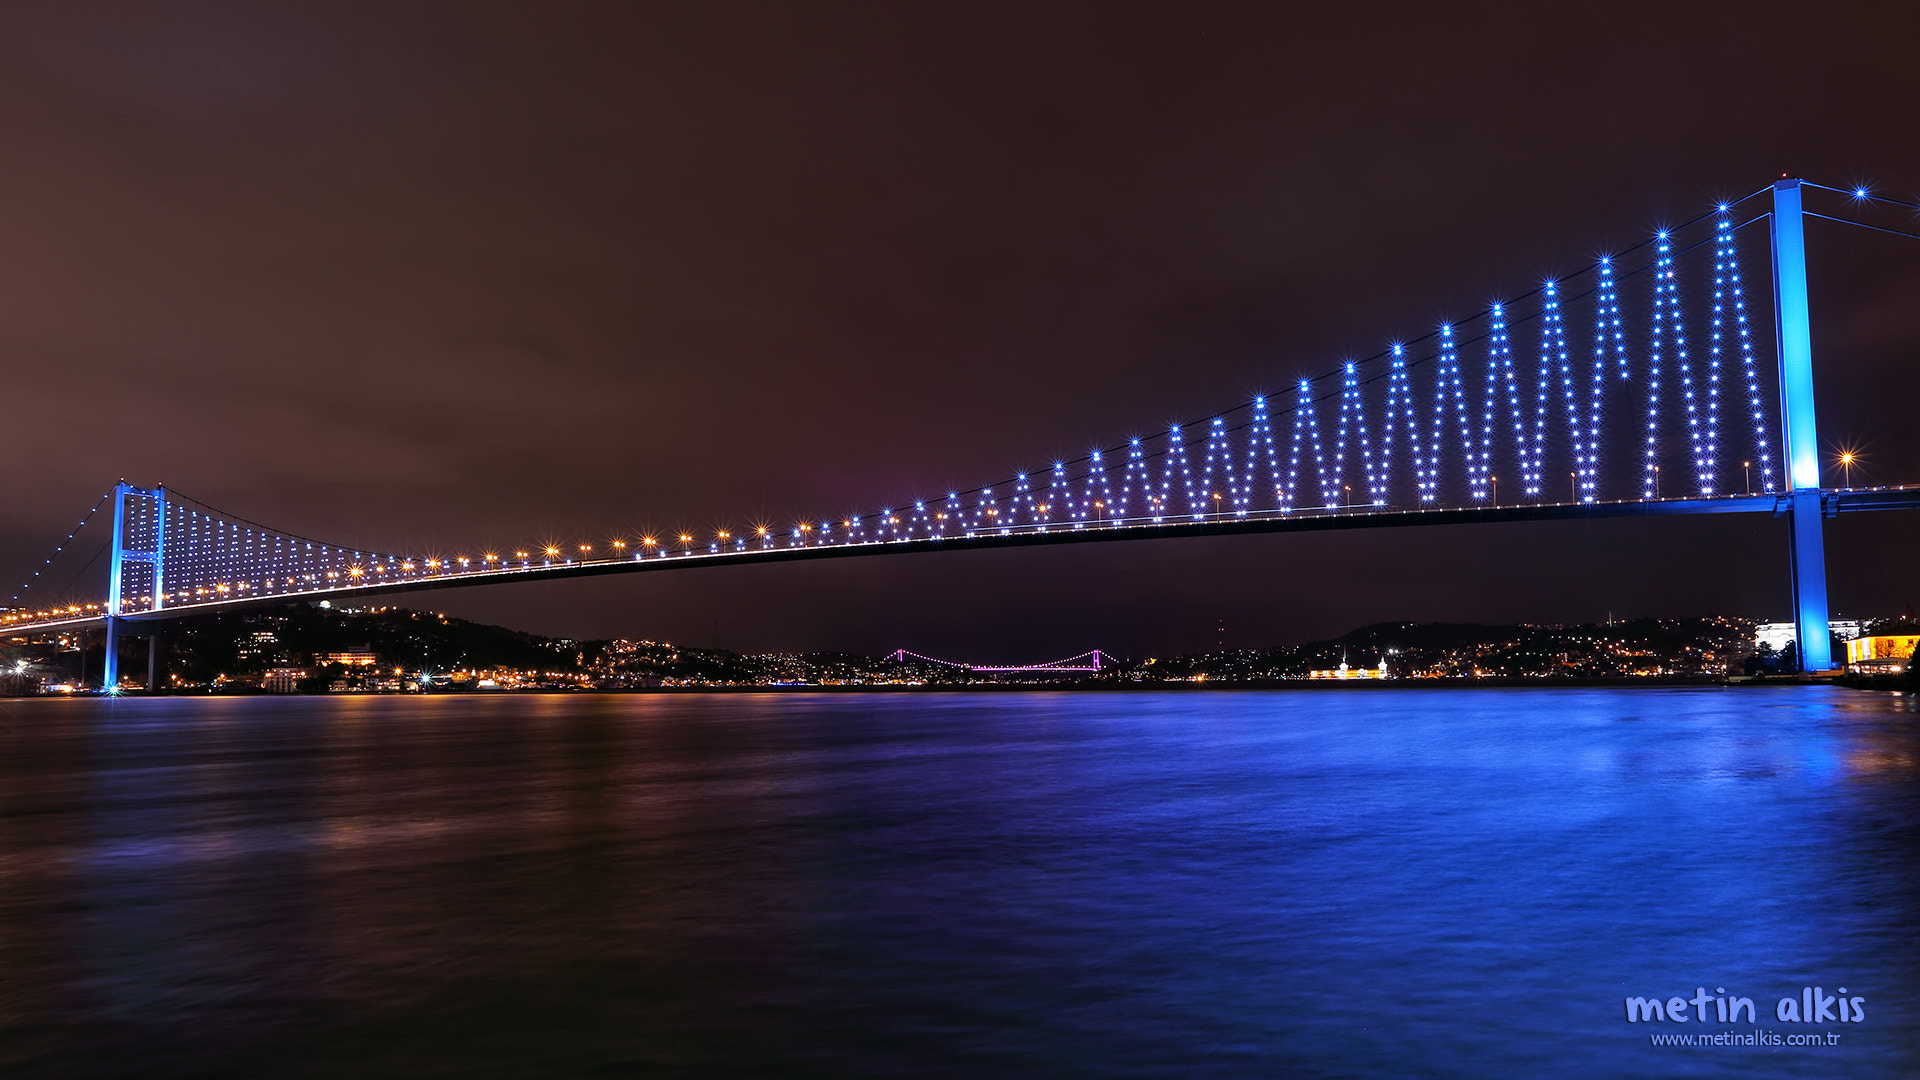 Photograph Istanbul Bosphorus Bridge by Metin Alkış on 500px